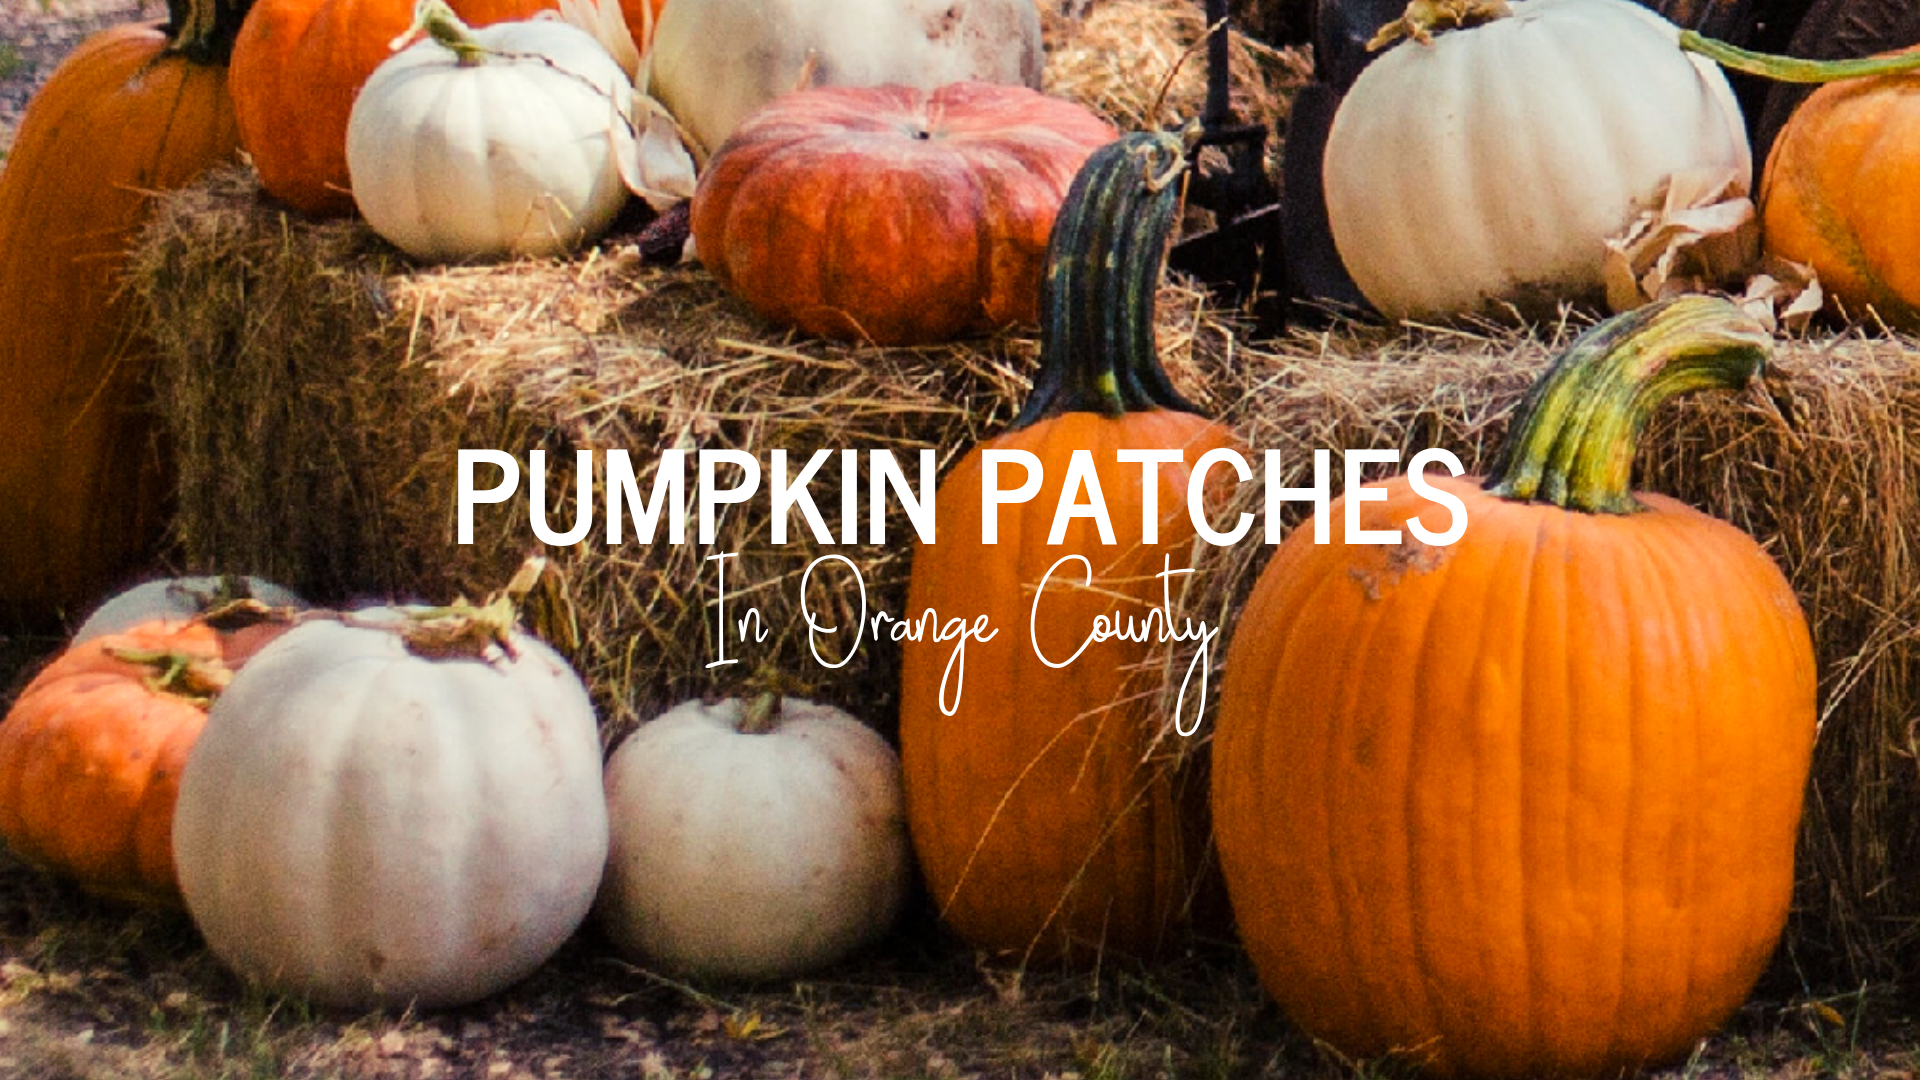 Pumpkin Patches In Orange County